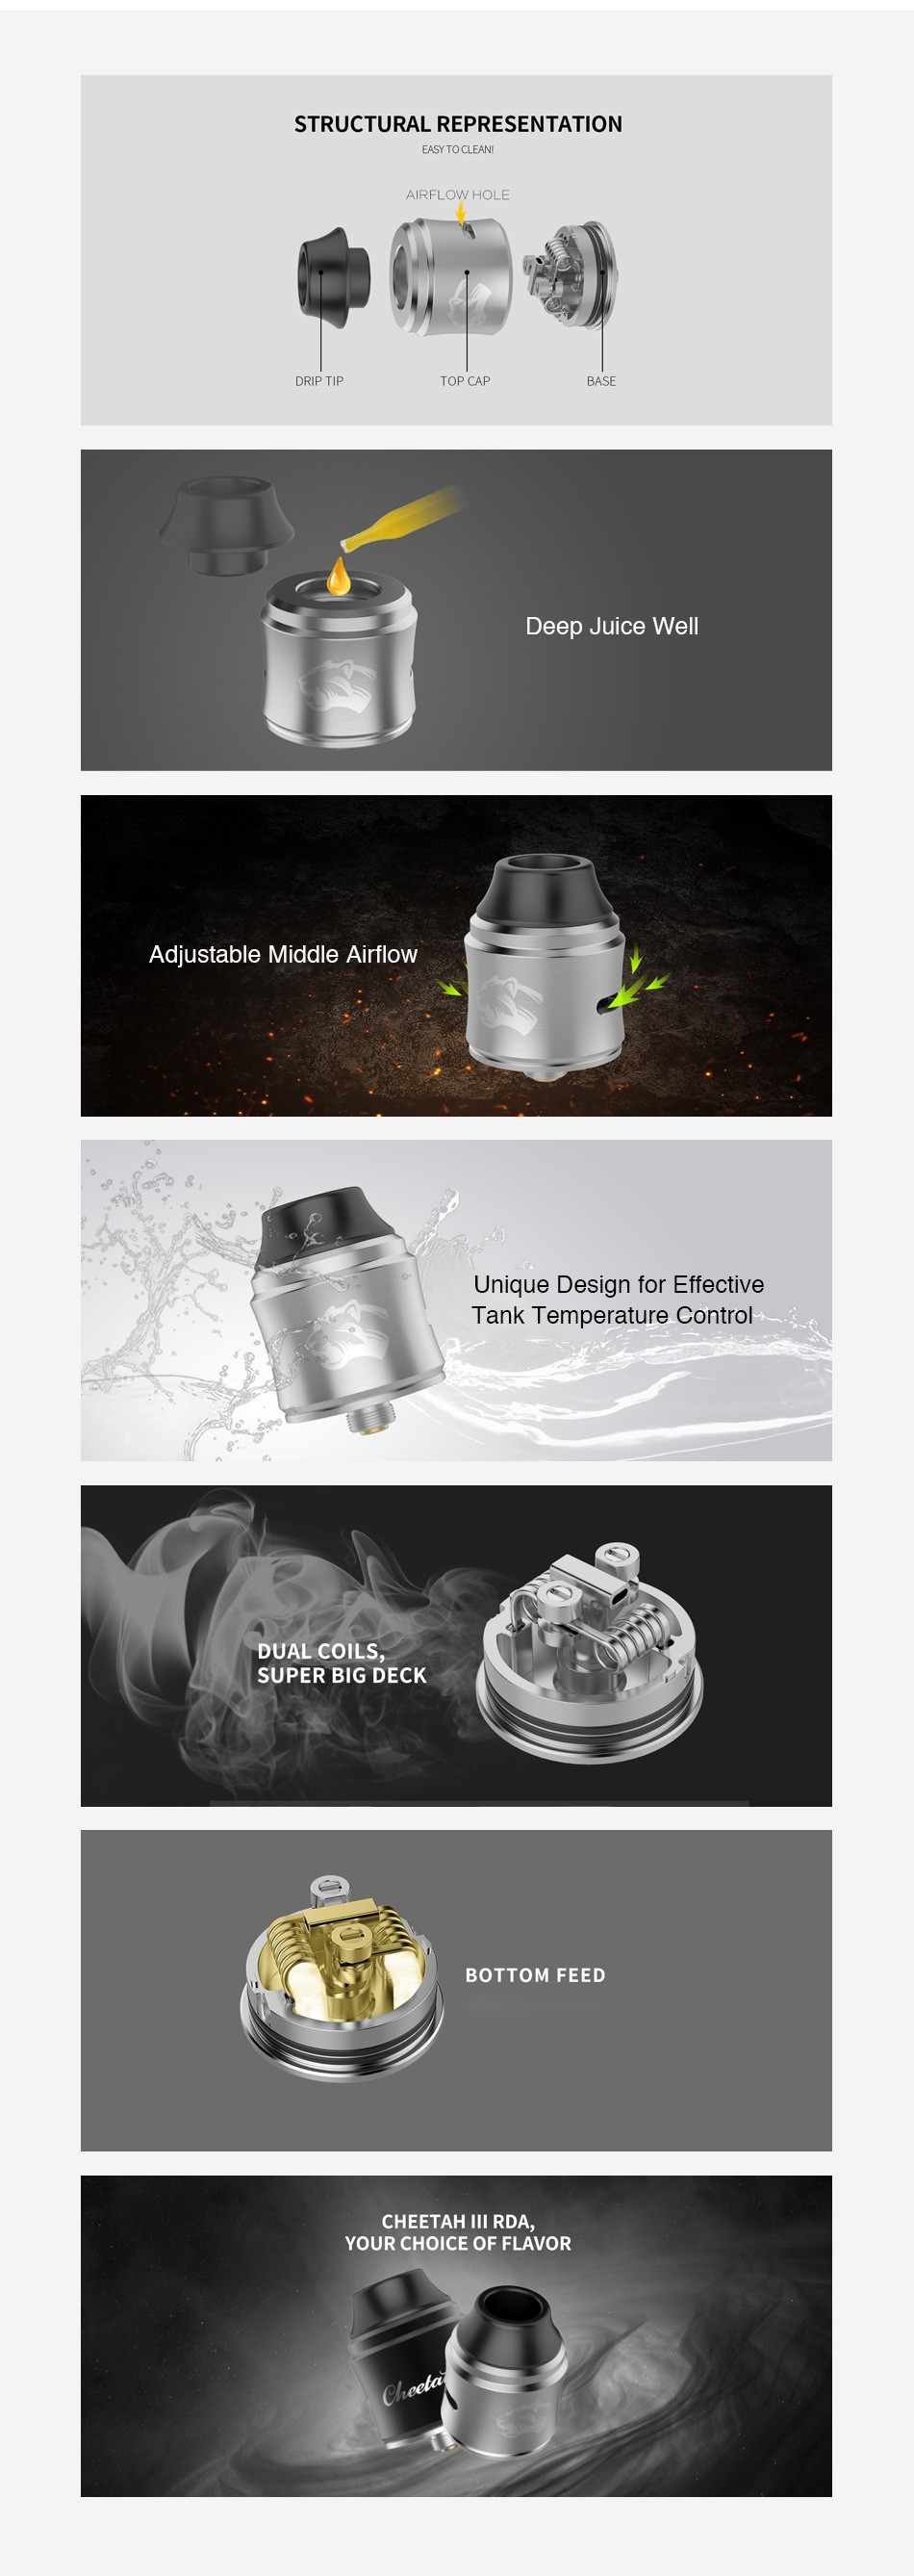 OBS Cheetah 3 RDA STRUCTURAL REPRESENTATION EASY TO CLE AIR LOW HOLE    DRIPT PASF Deep Juice Wel Adjustable Middle Airflow Unique Design for Effective Tank Temperature Control DUAL COILS SUPER BIG DECK BOTTOM FEED CHEETAH III RDA YOUR CHOICE OF FLAVOR